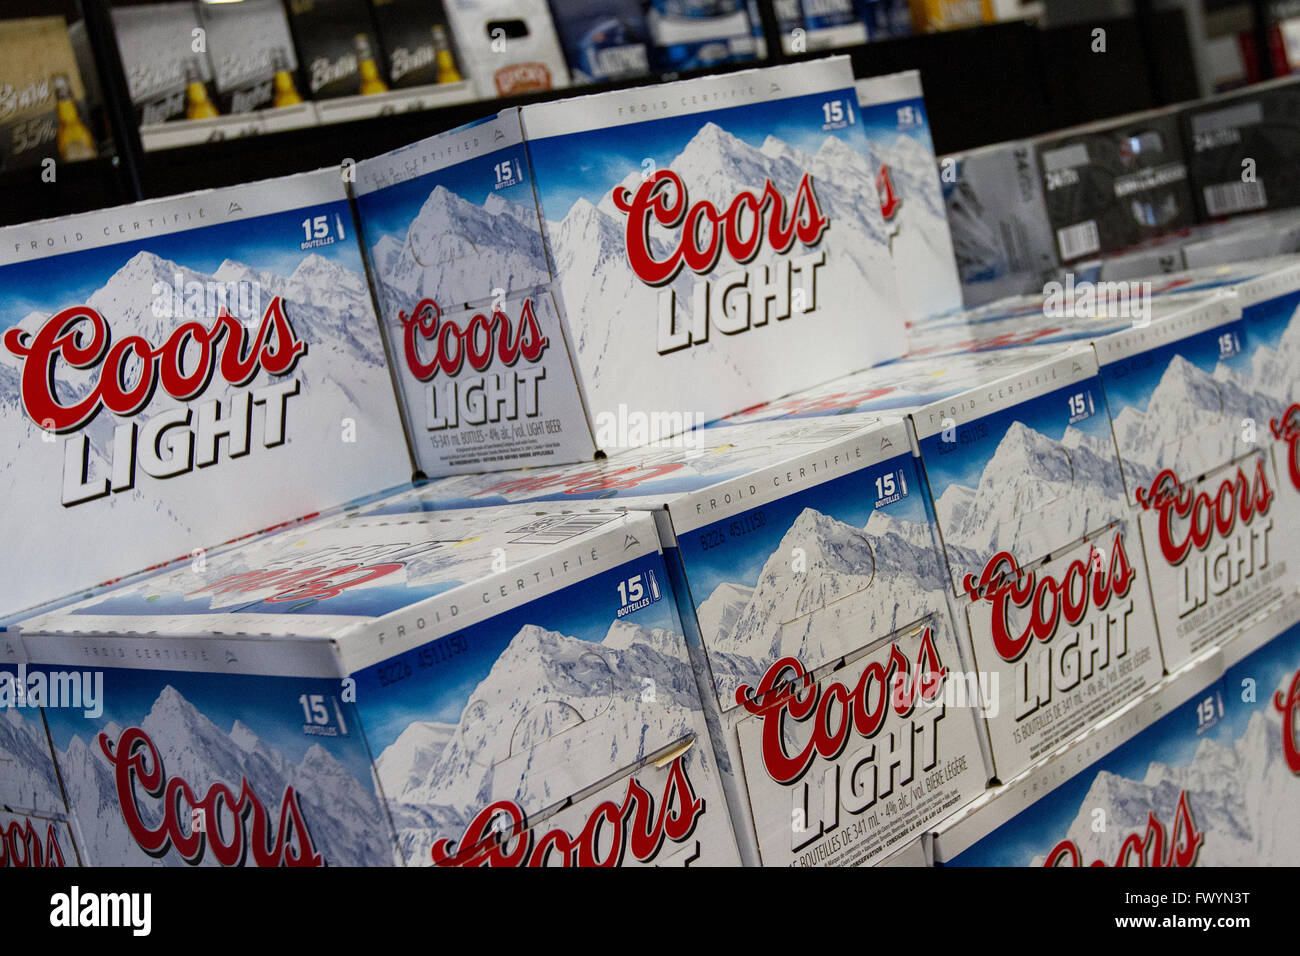 Amazing Coors Light Beer Cases On Display At A Newly Opened Self Serve Beer Store  In Kingston, Ont., On March 16, 2016. Awesome Ideas